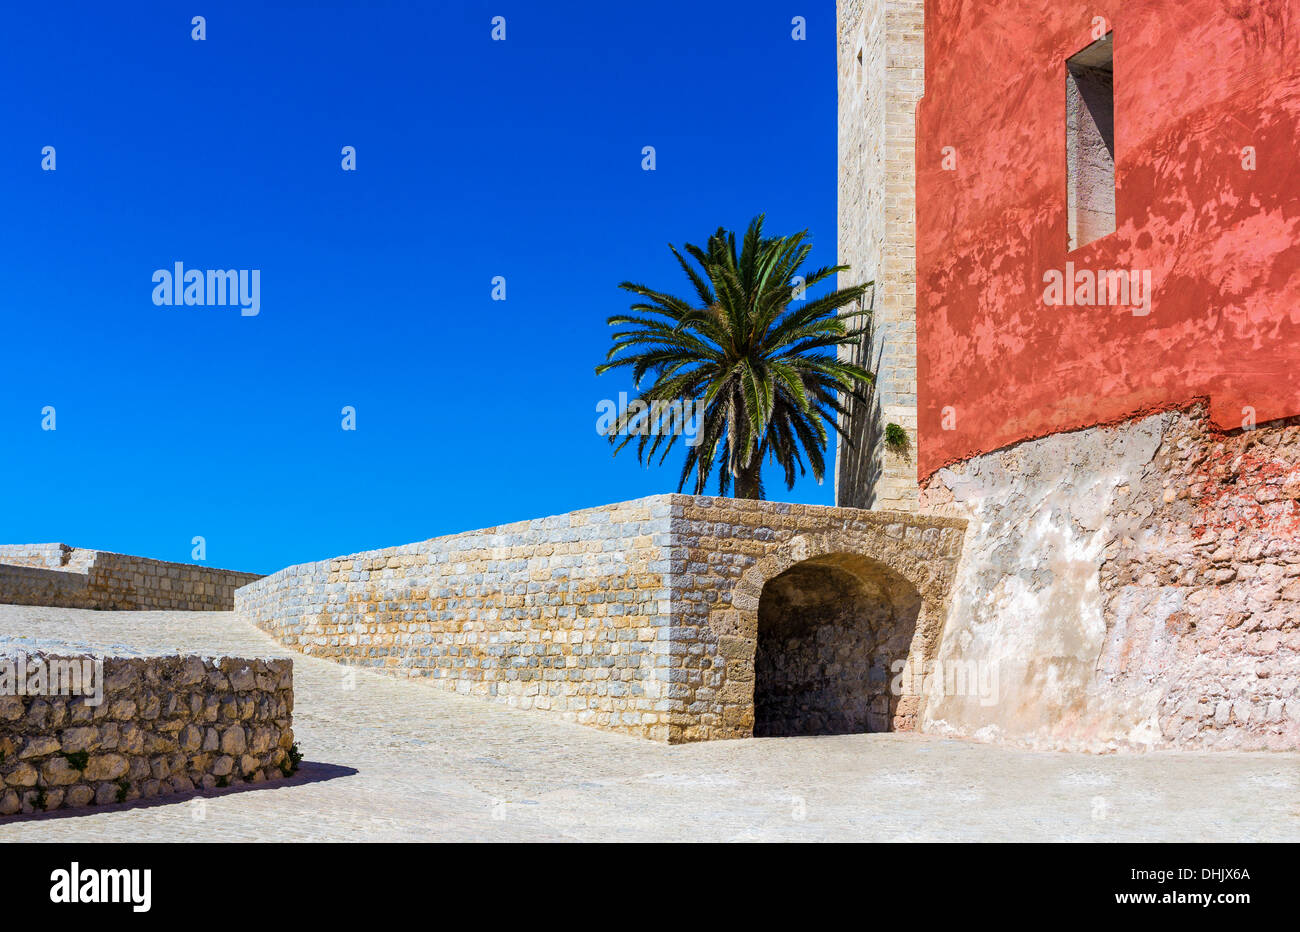 Europe, Spain, Balearic islands, Eivissa, Ibiza, old town, Dalt Vila, the ramparts area behind the Cathedral - Stock Image